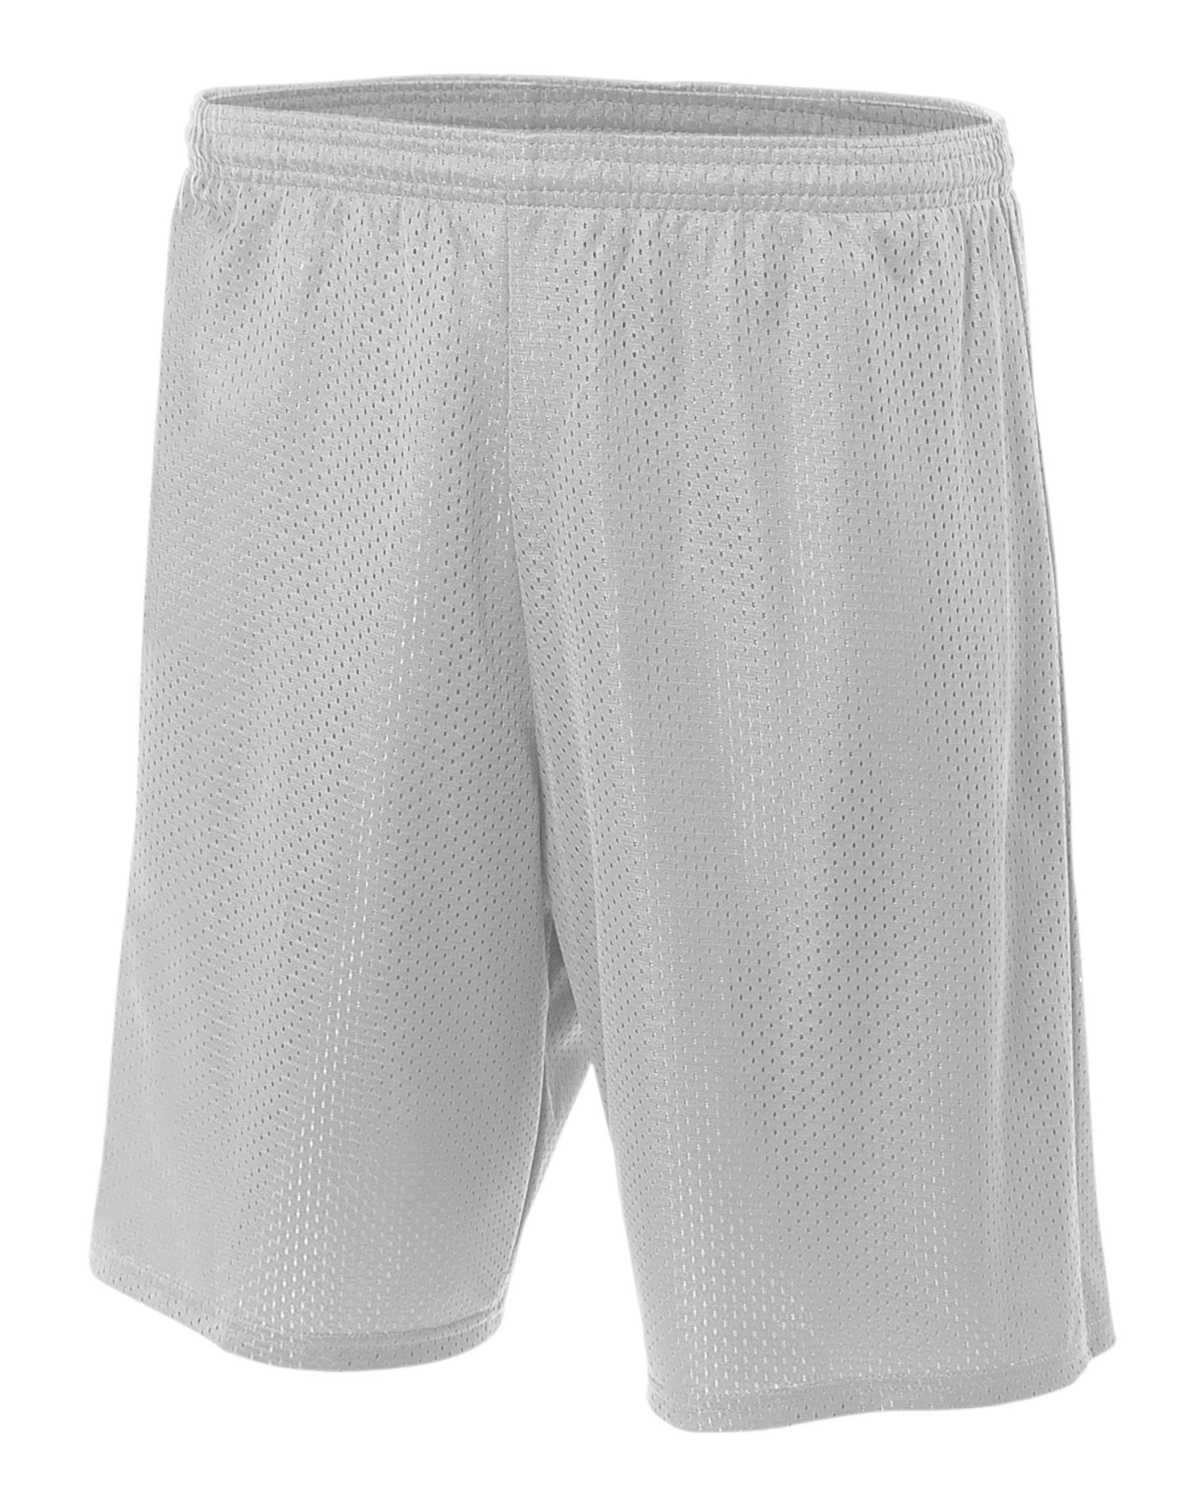 "Adult 11"" Inseam Tricot Mesh Short"